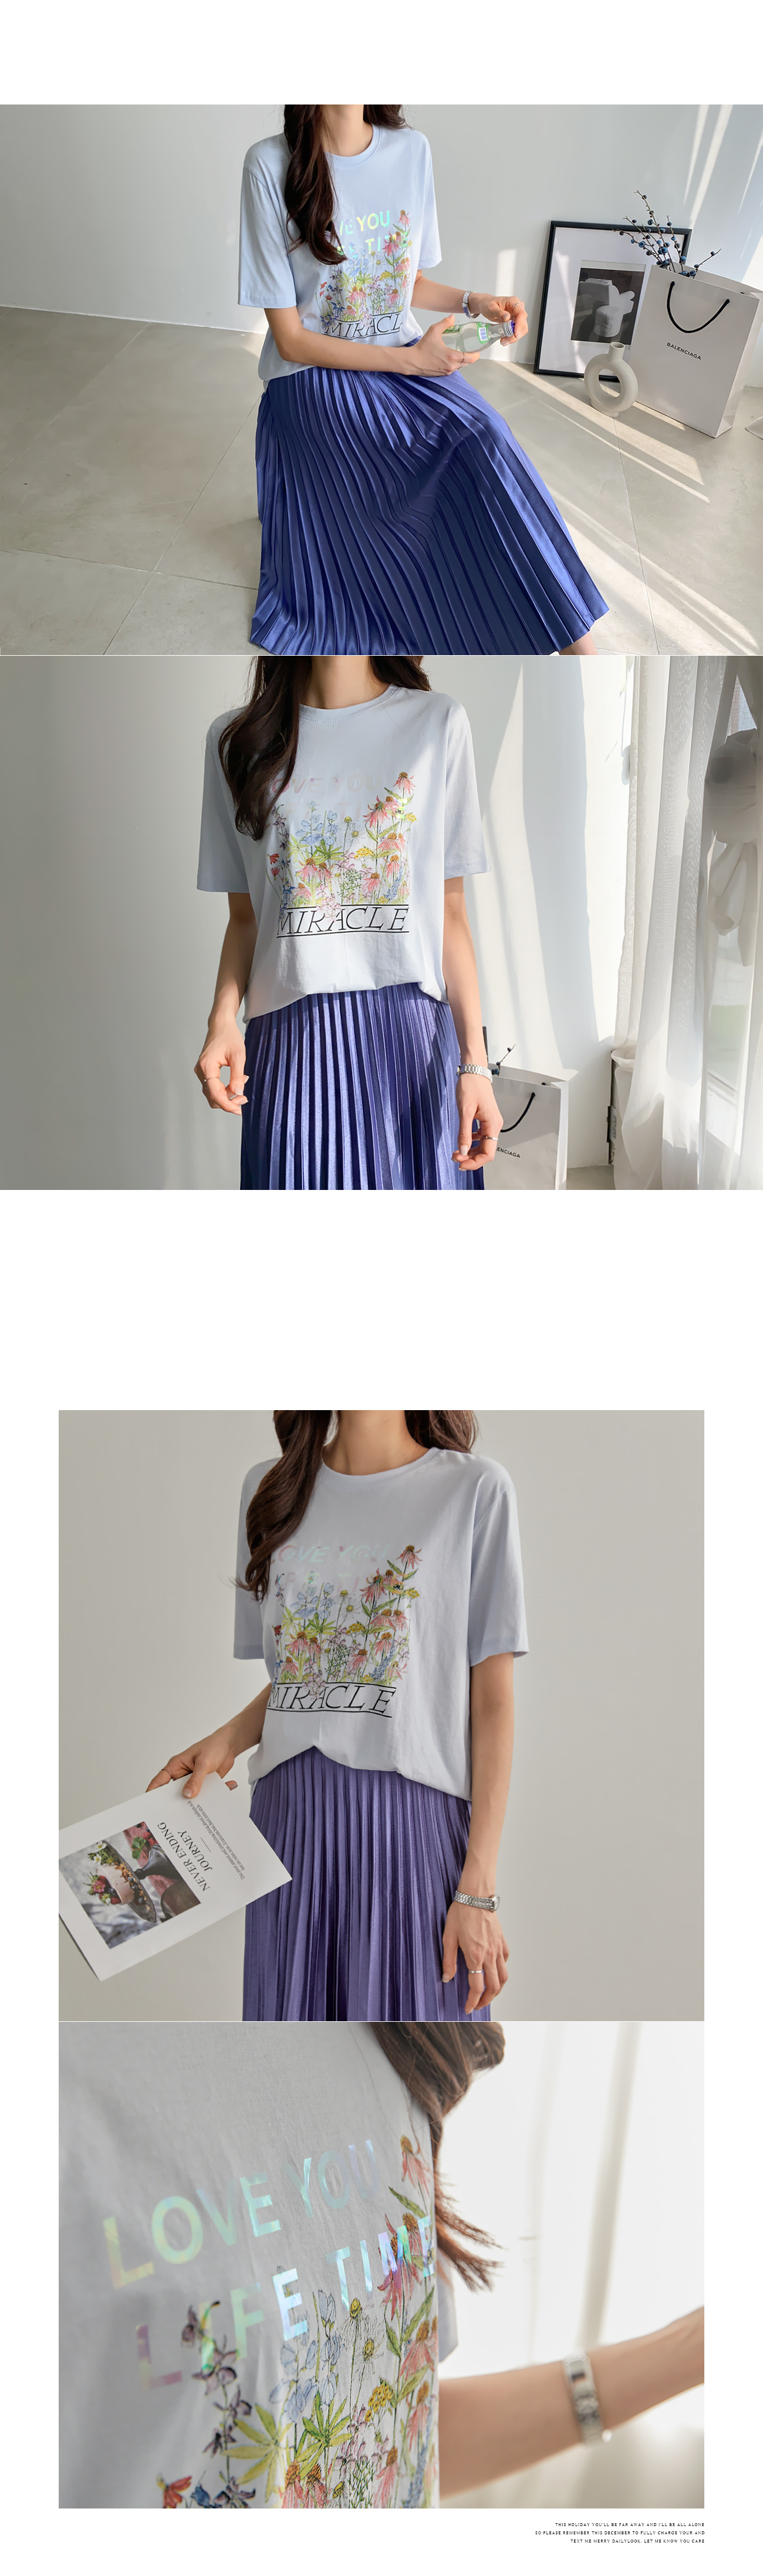 Miracle Aurora T-shirt #108152F Available★Exclusive 3,000won discount★